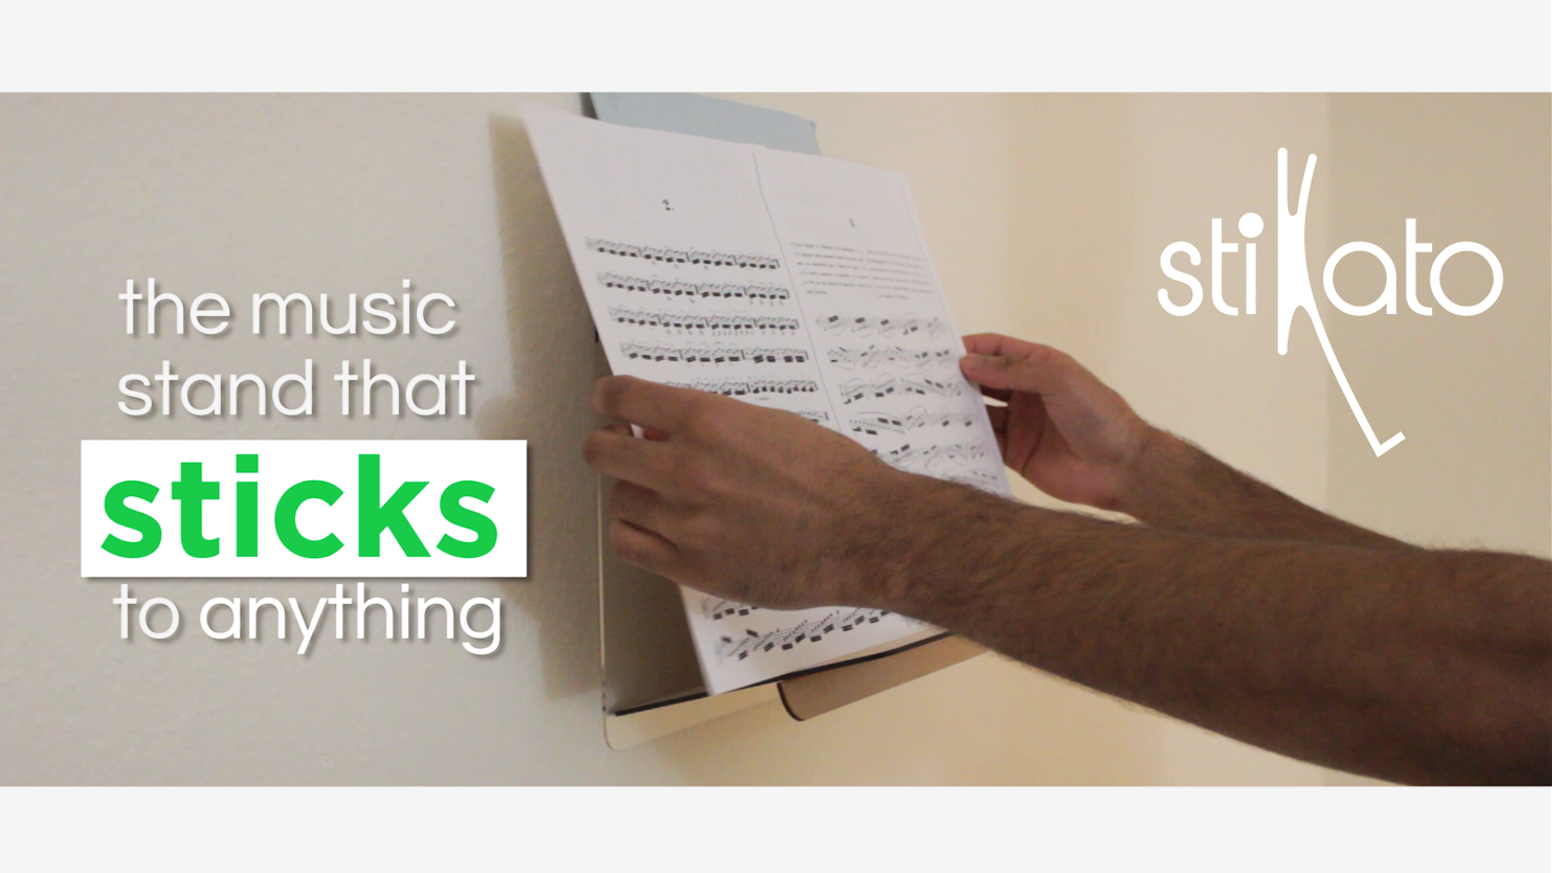 The world's first music stand that sticks to any surface & supports an entire binder of music.